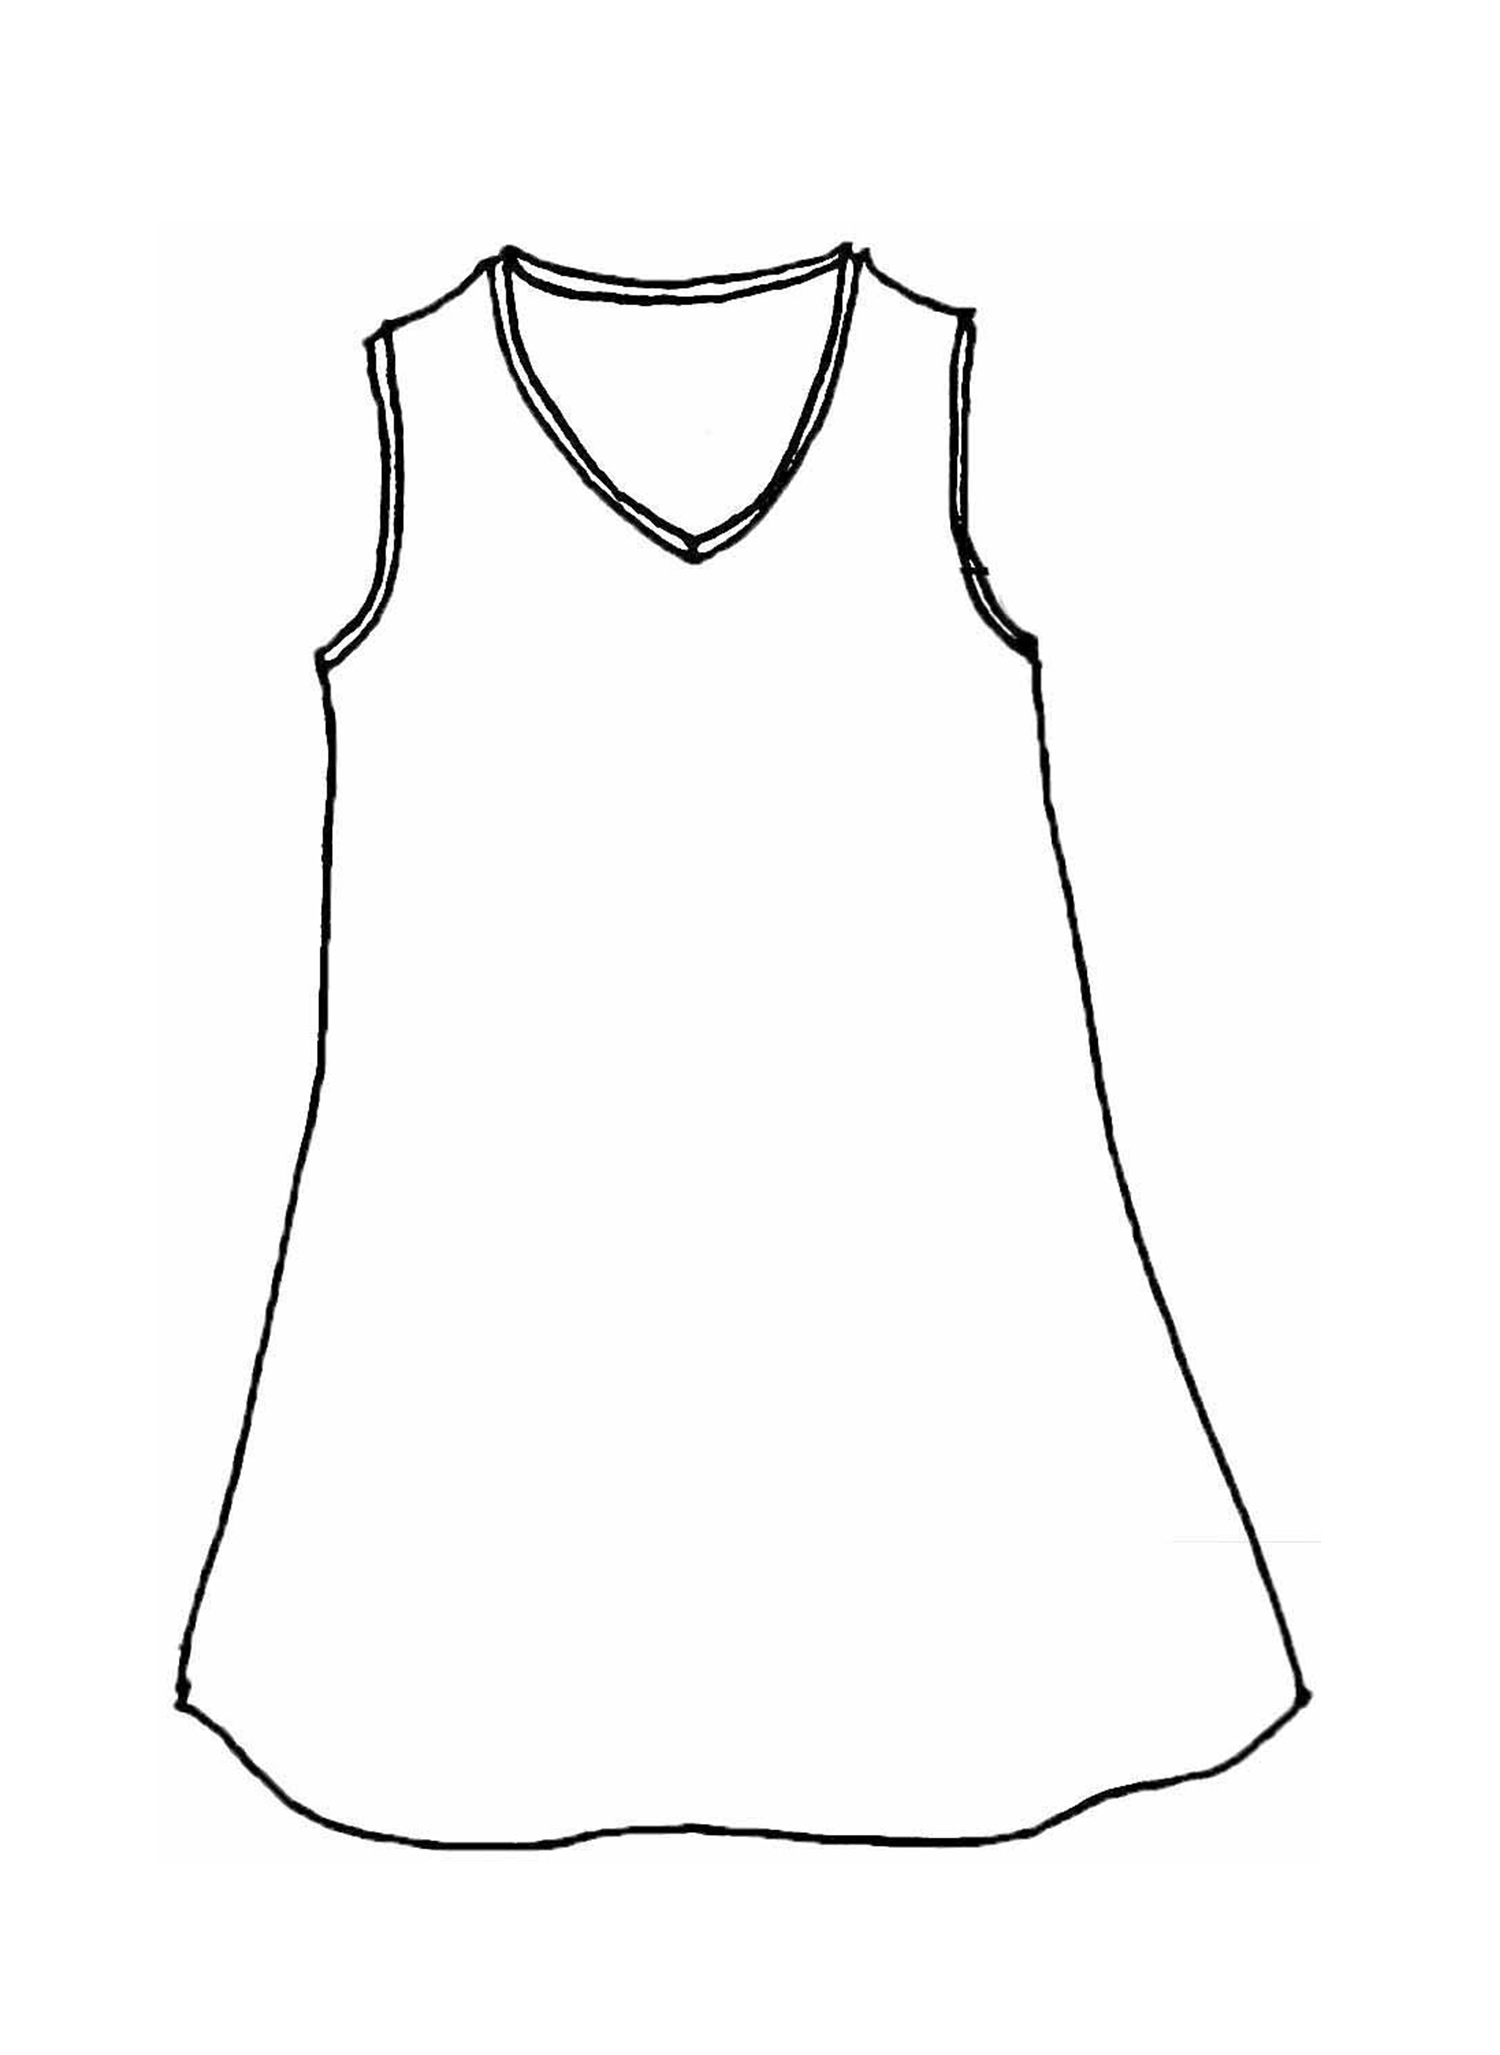 Layer V-Neck Tunic sketch image